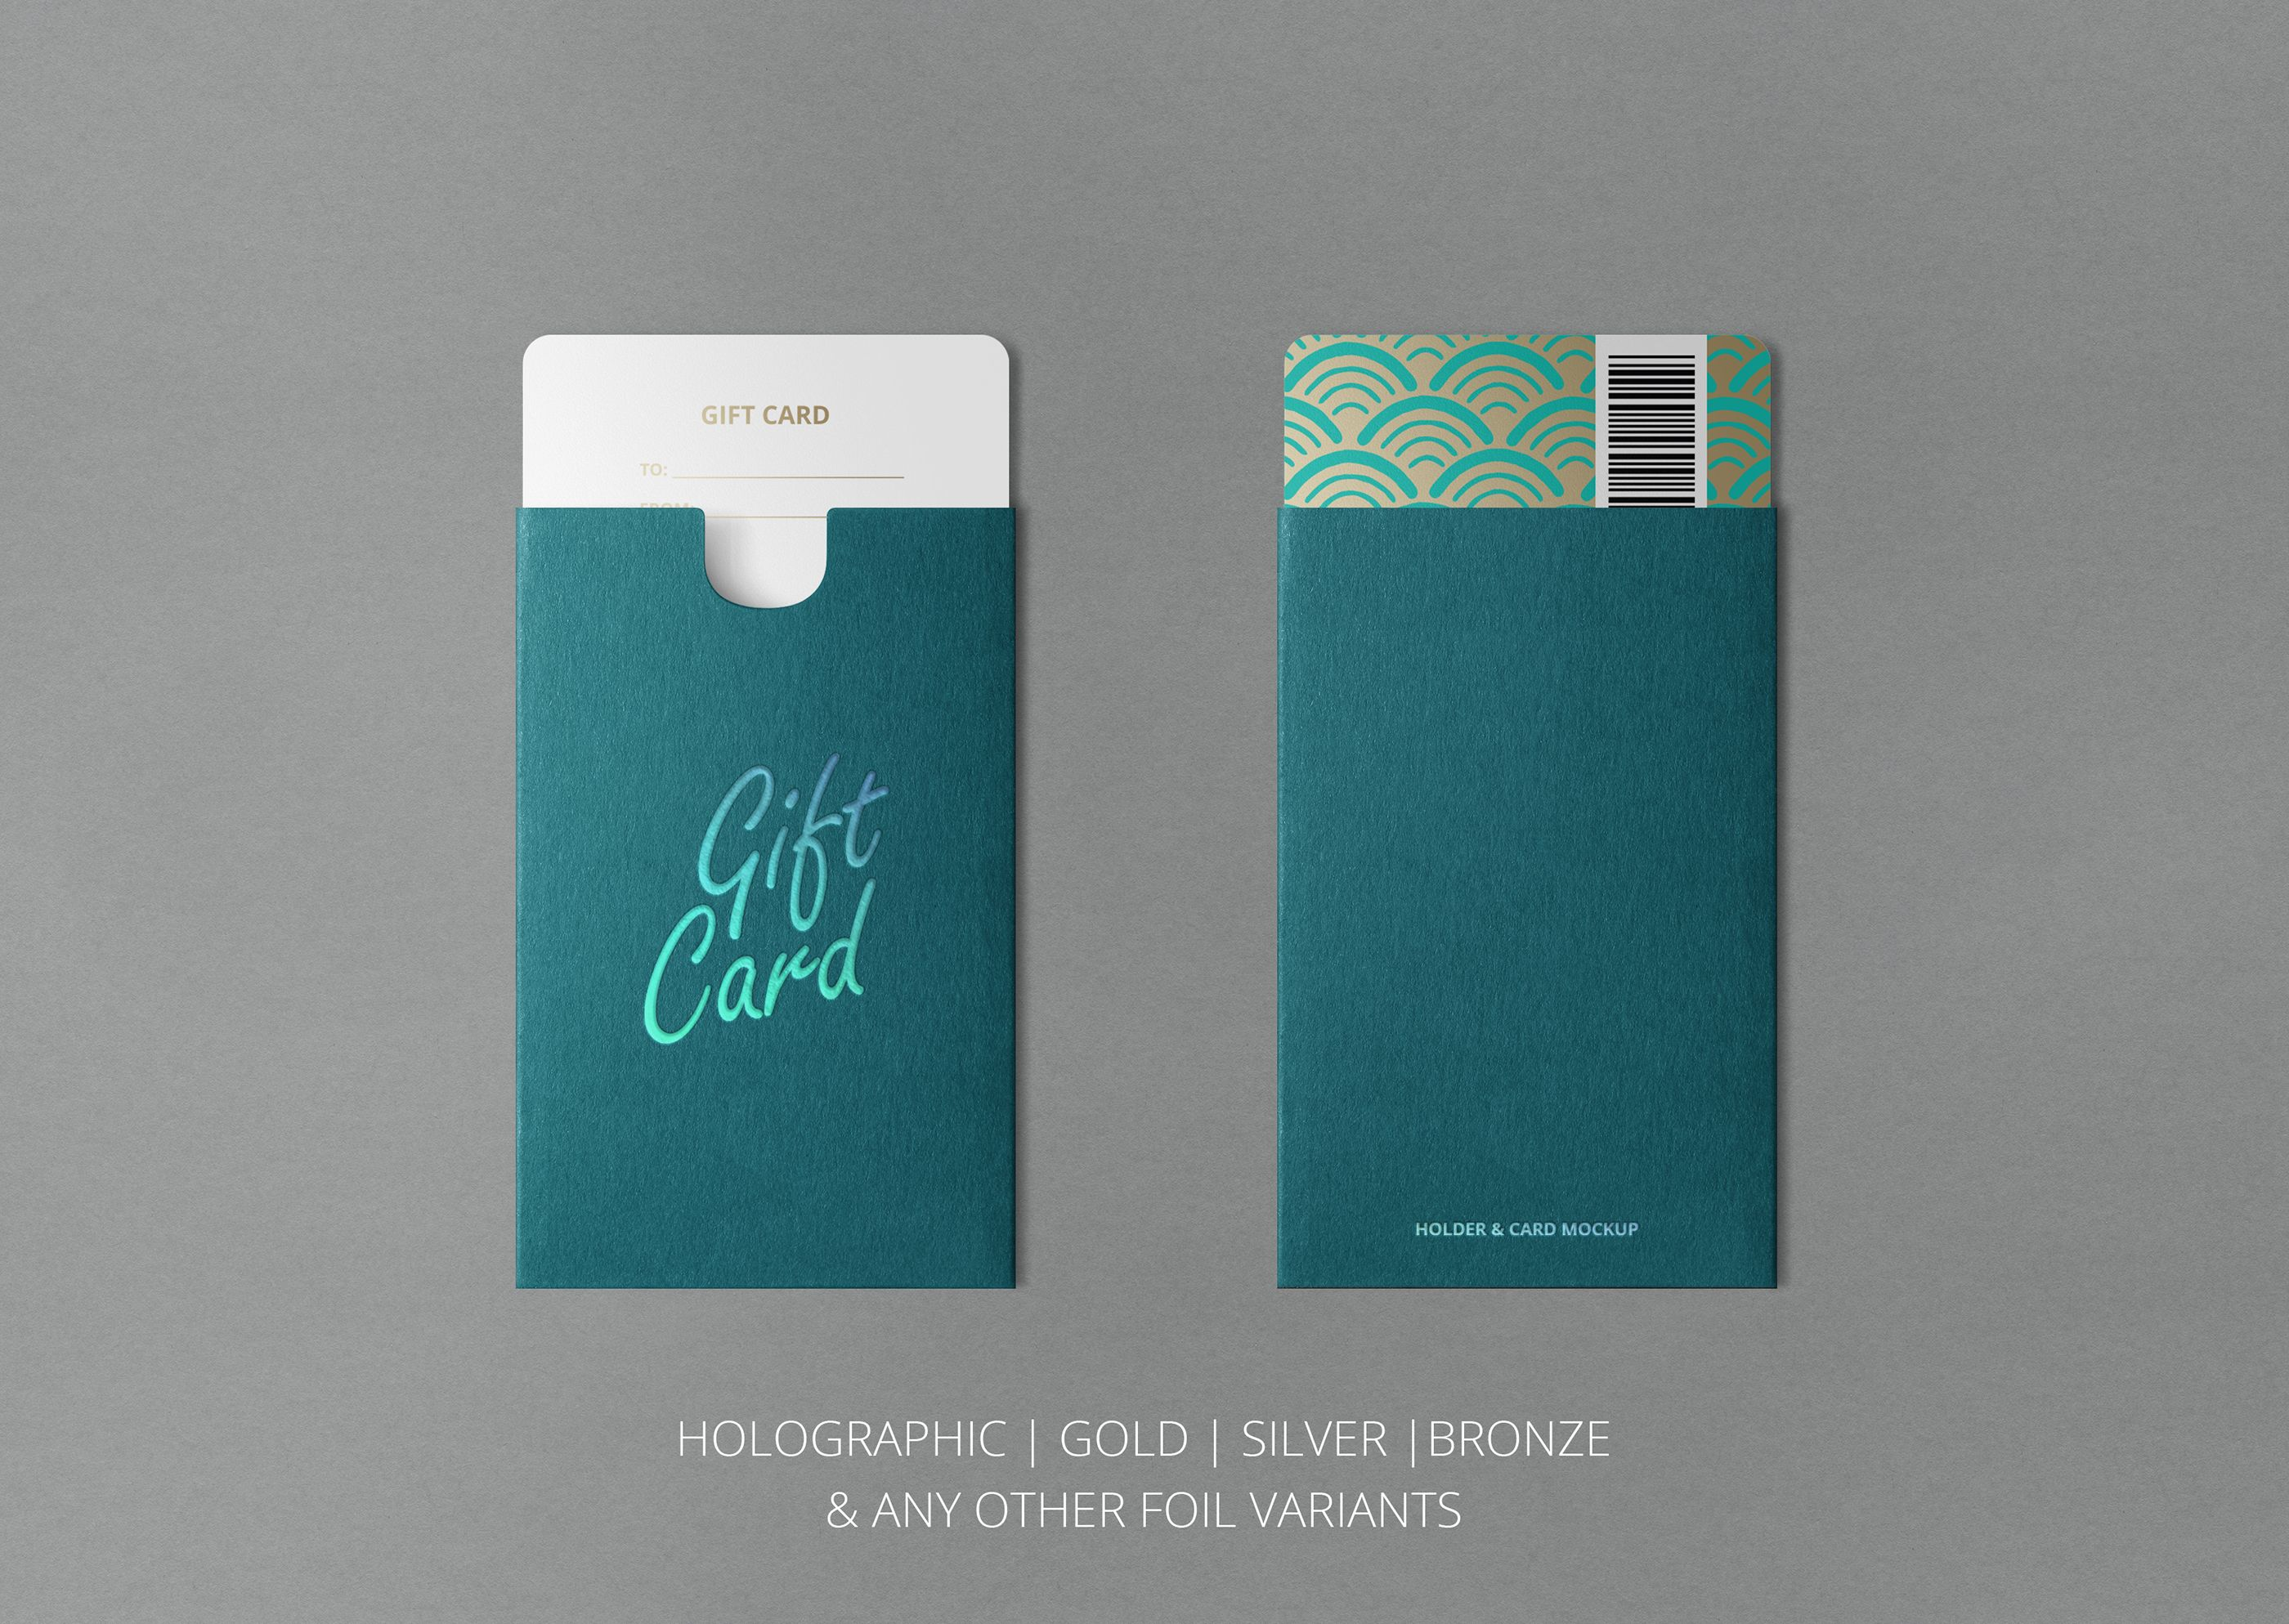 gift card or key card mockup download from clevery design design